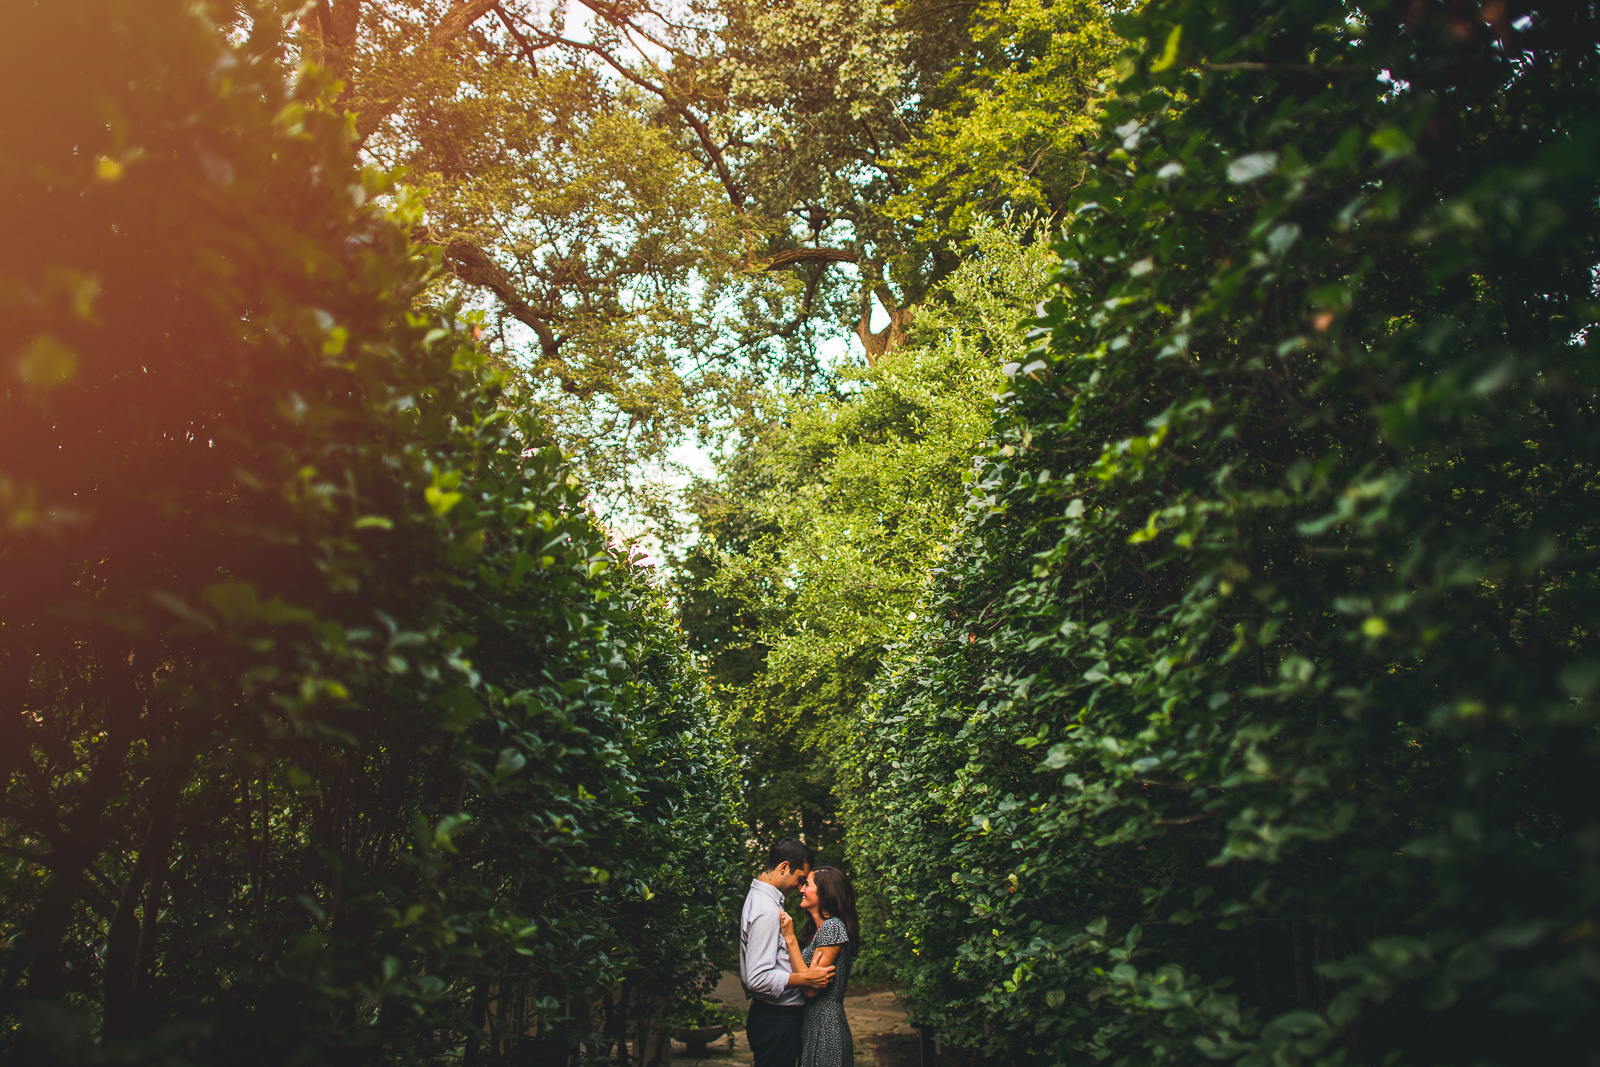 12 northwestern engagement garden photos - Northwestern Engagement Photos // Emma + Francesco